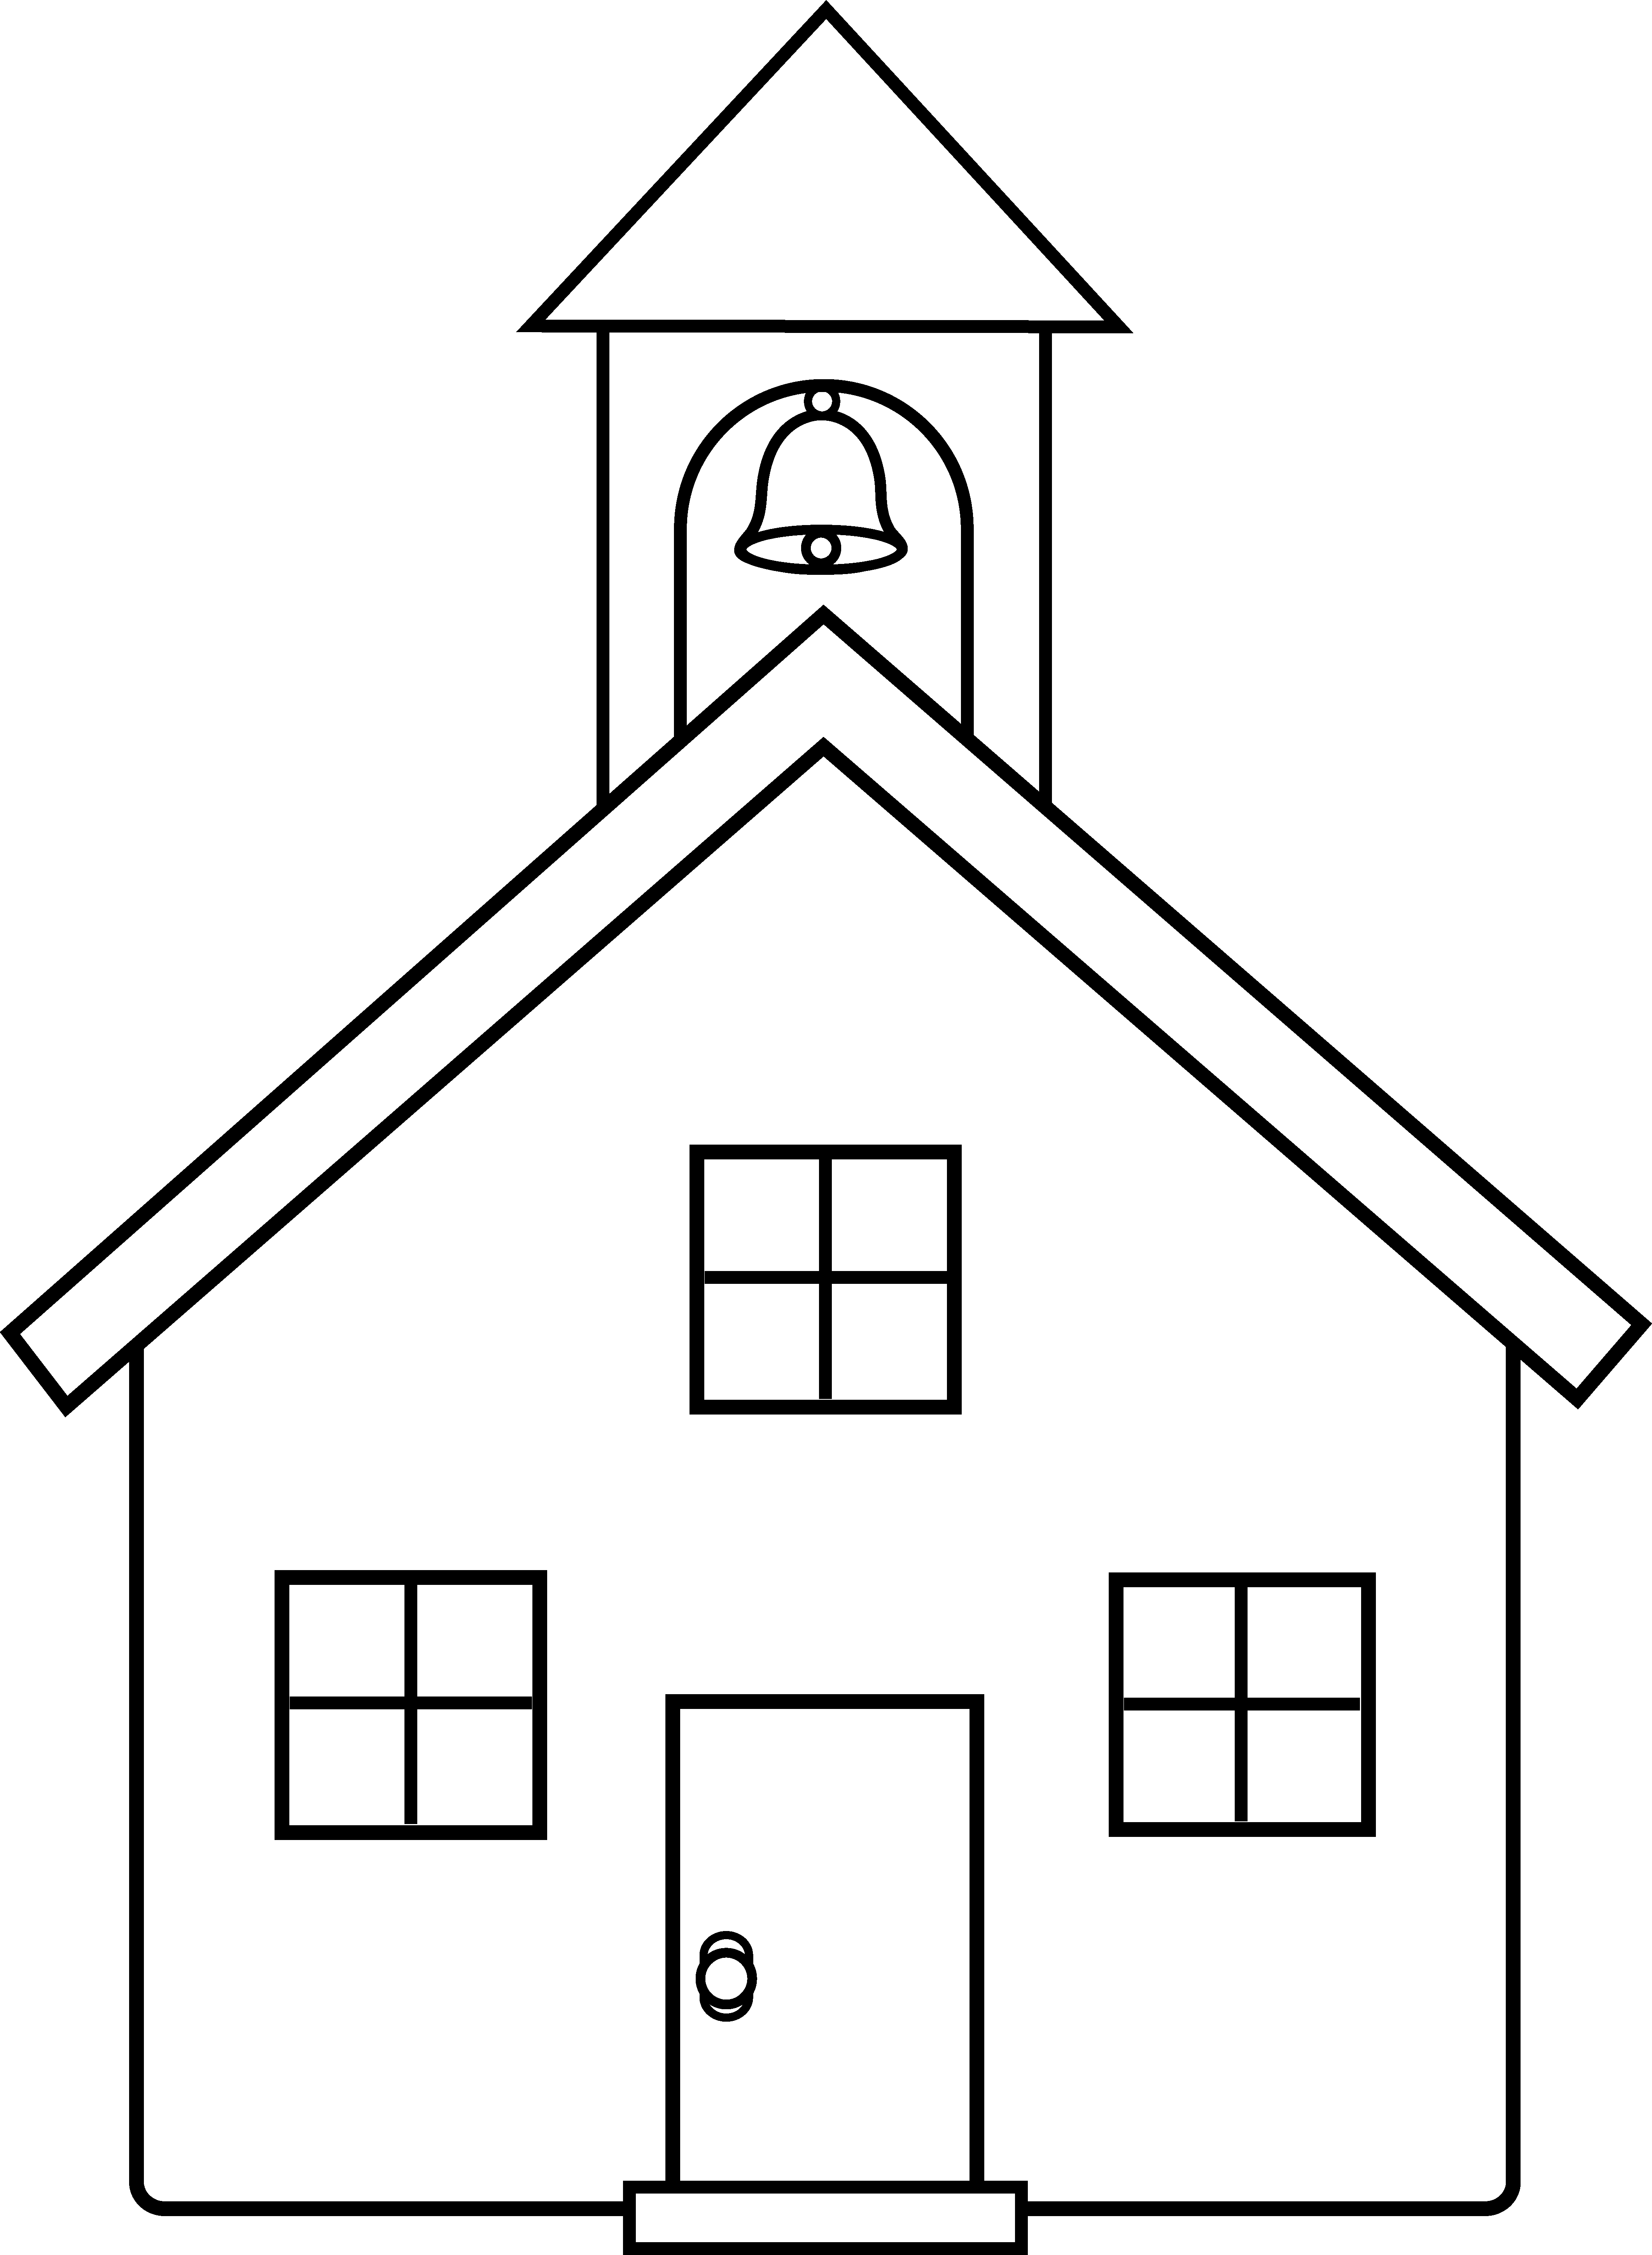 Home clipart country home. School house line art